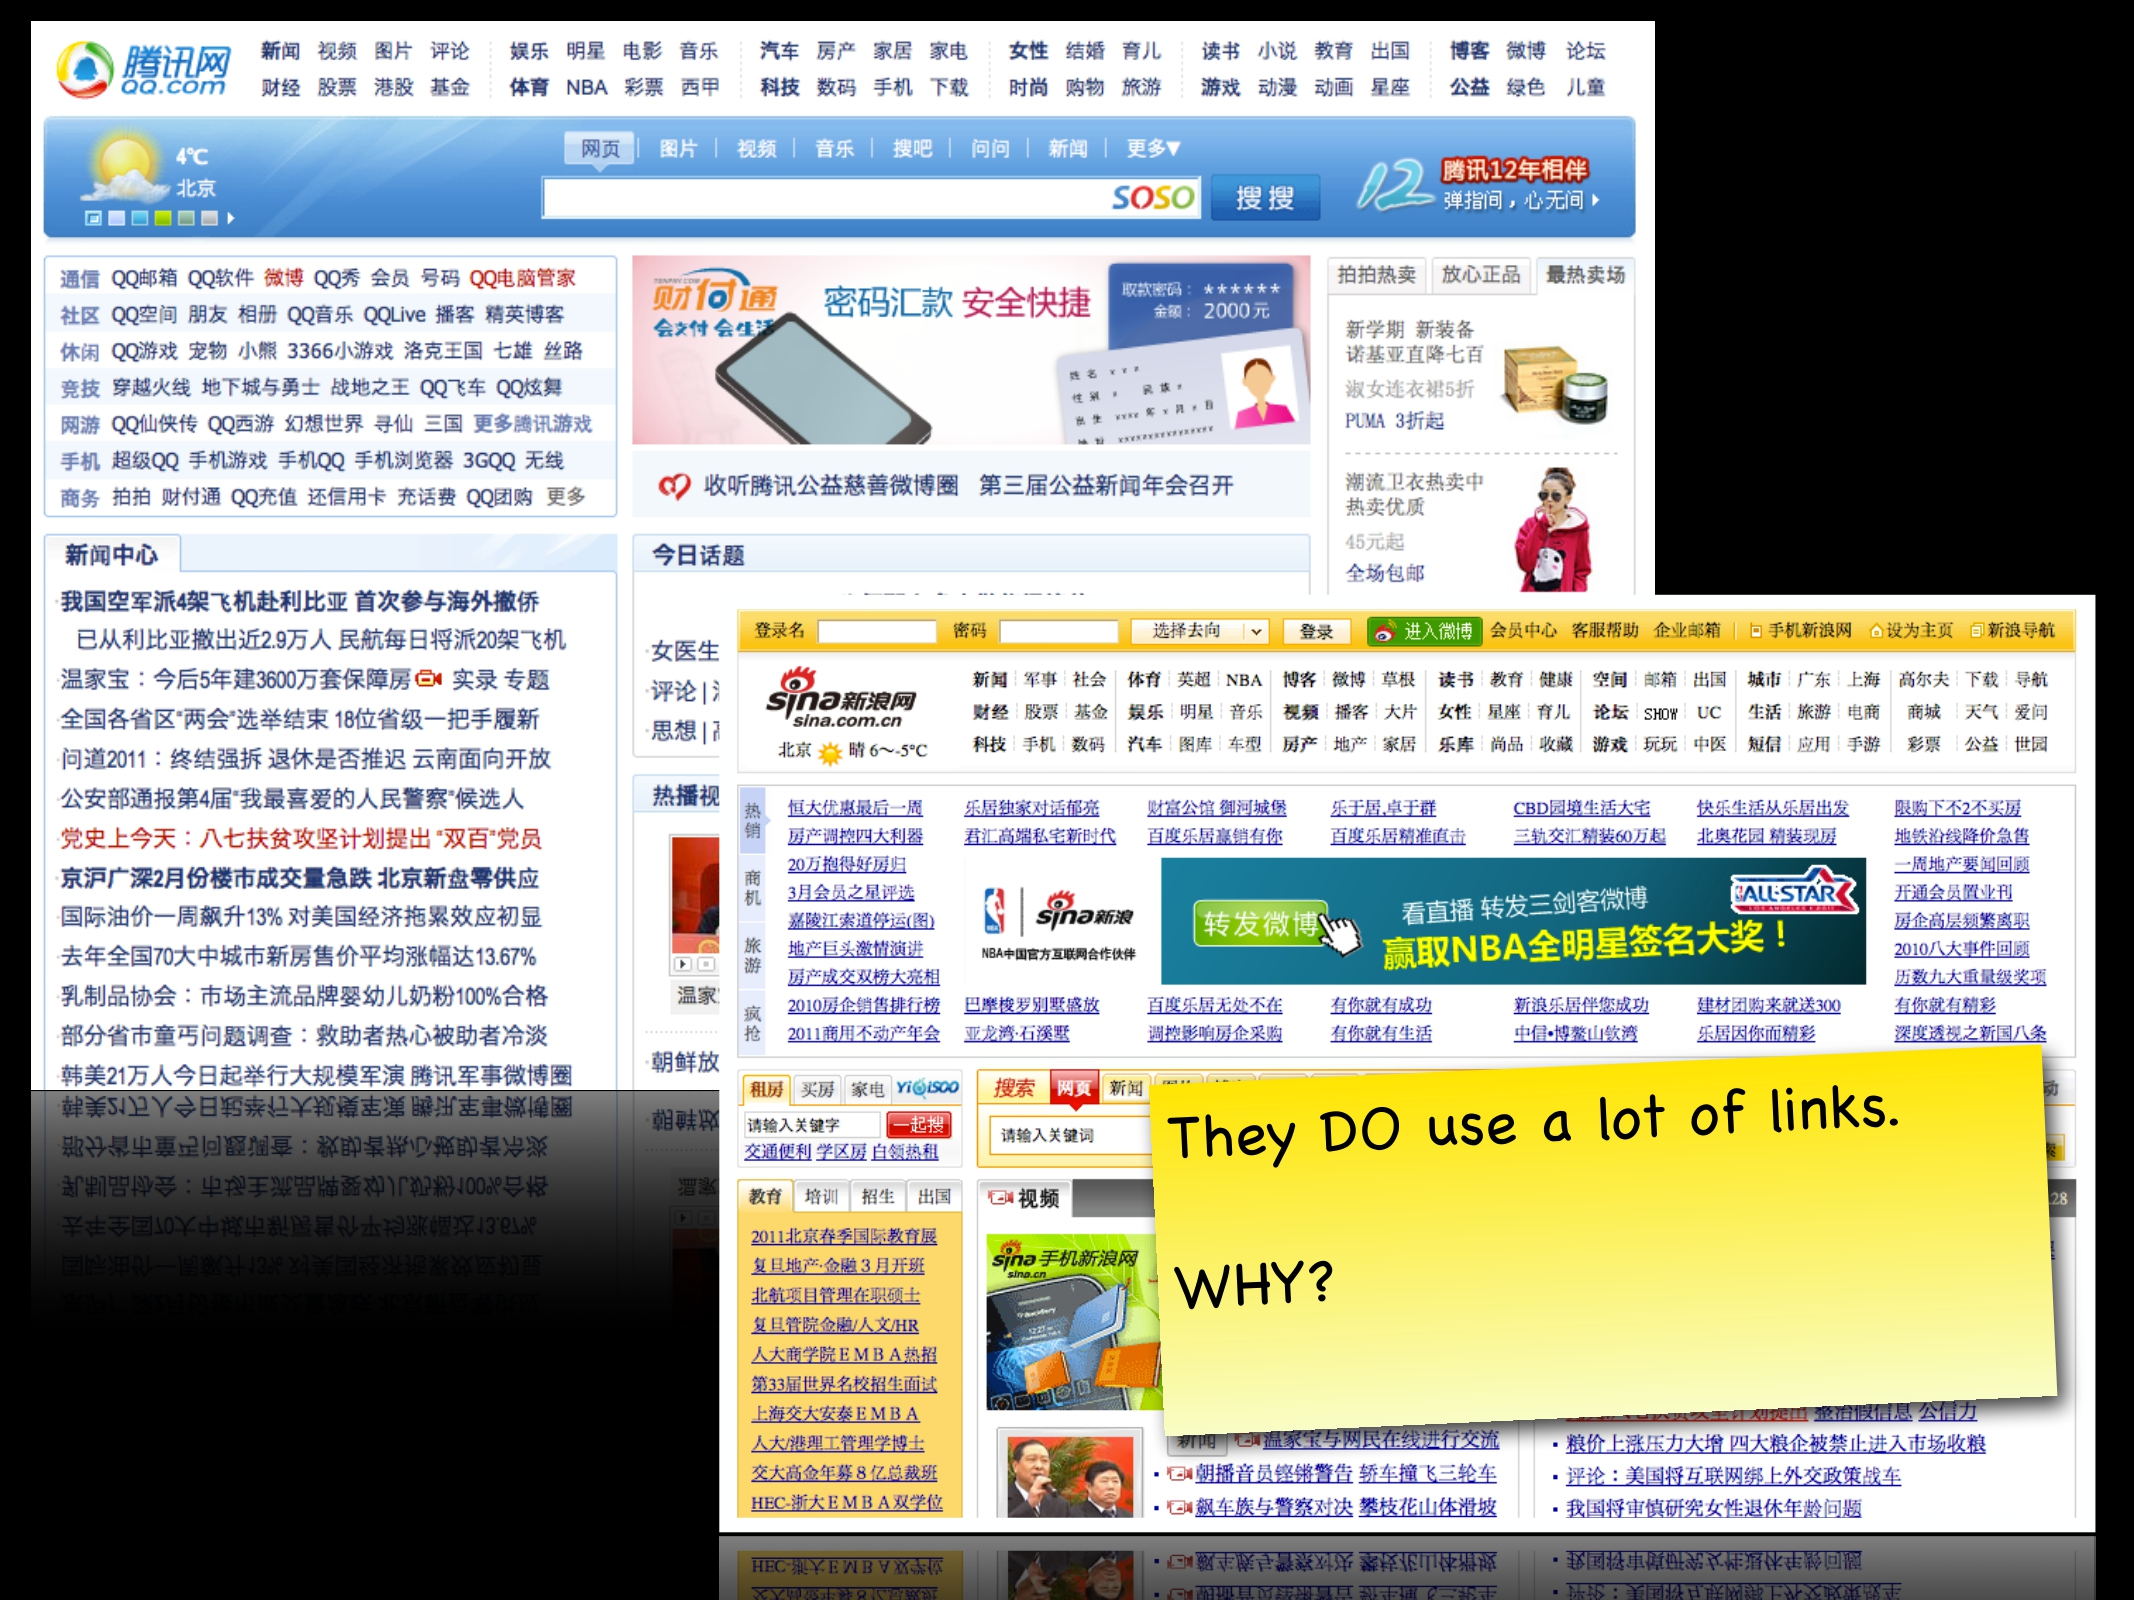 Chinese Web Design Patterns 2011_pages-to-jpg-0020.jpg